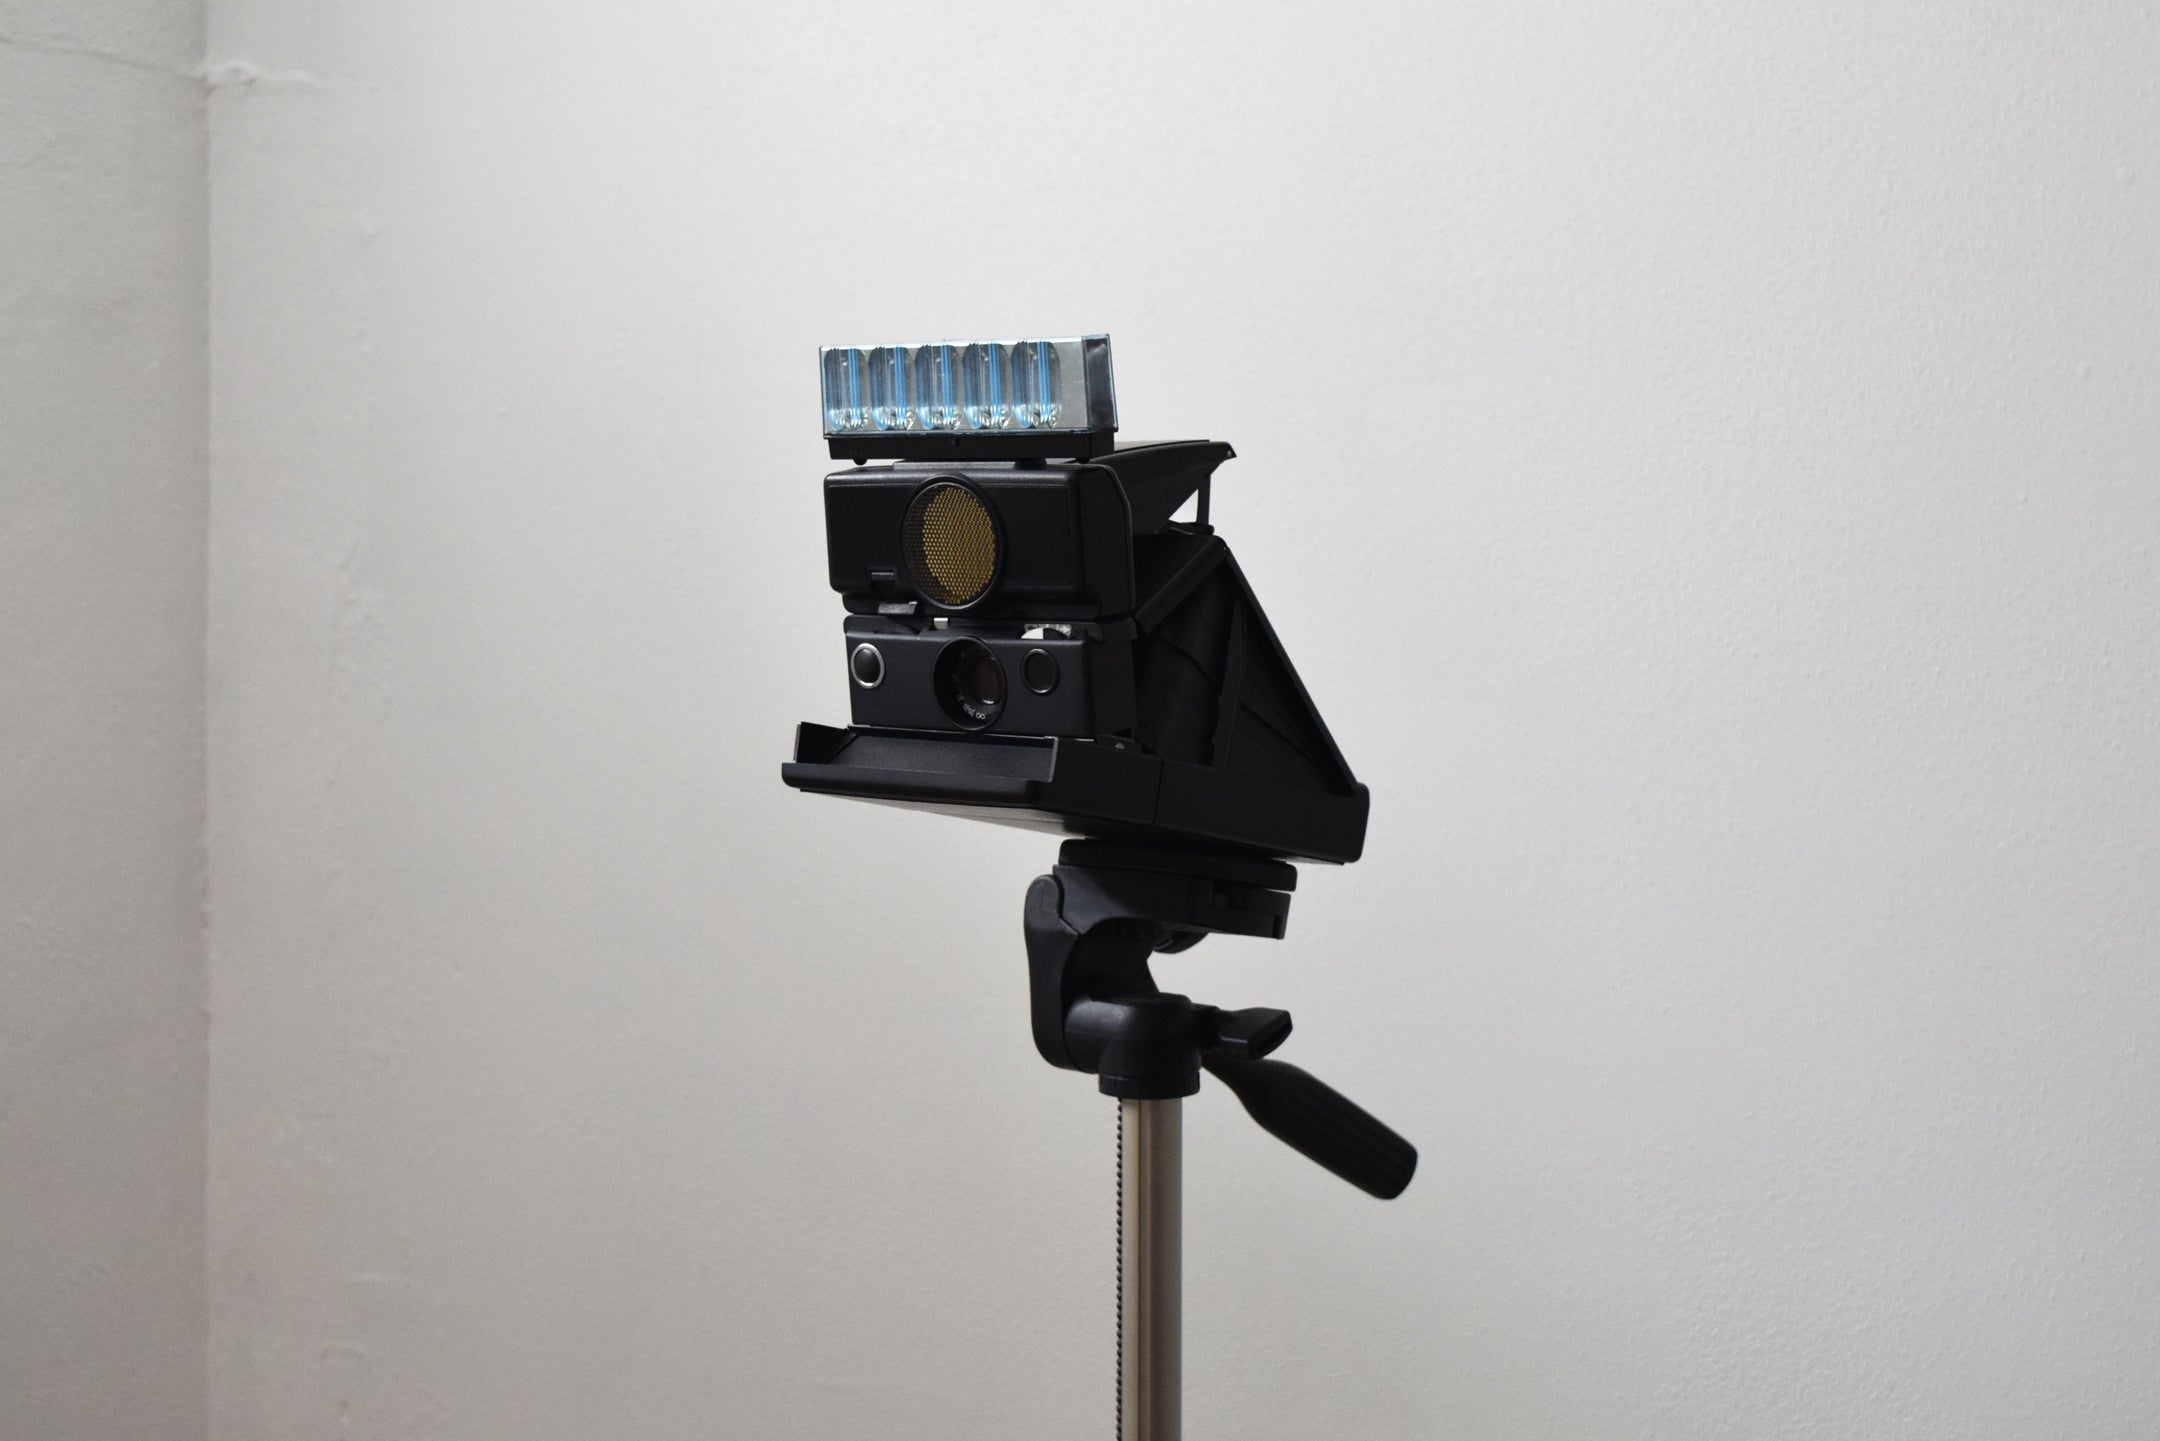 SX70 to 600 conversion camera with Flash and Tripod